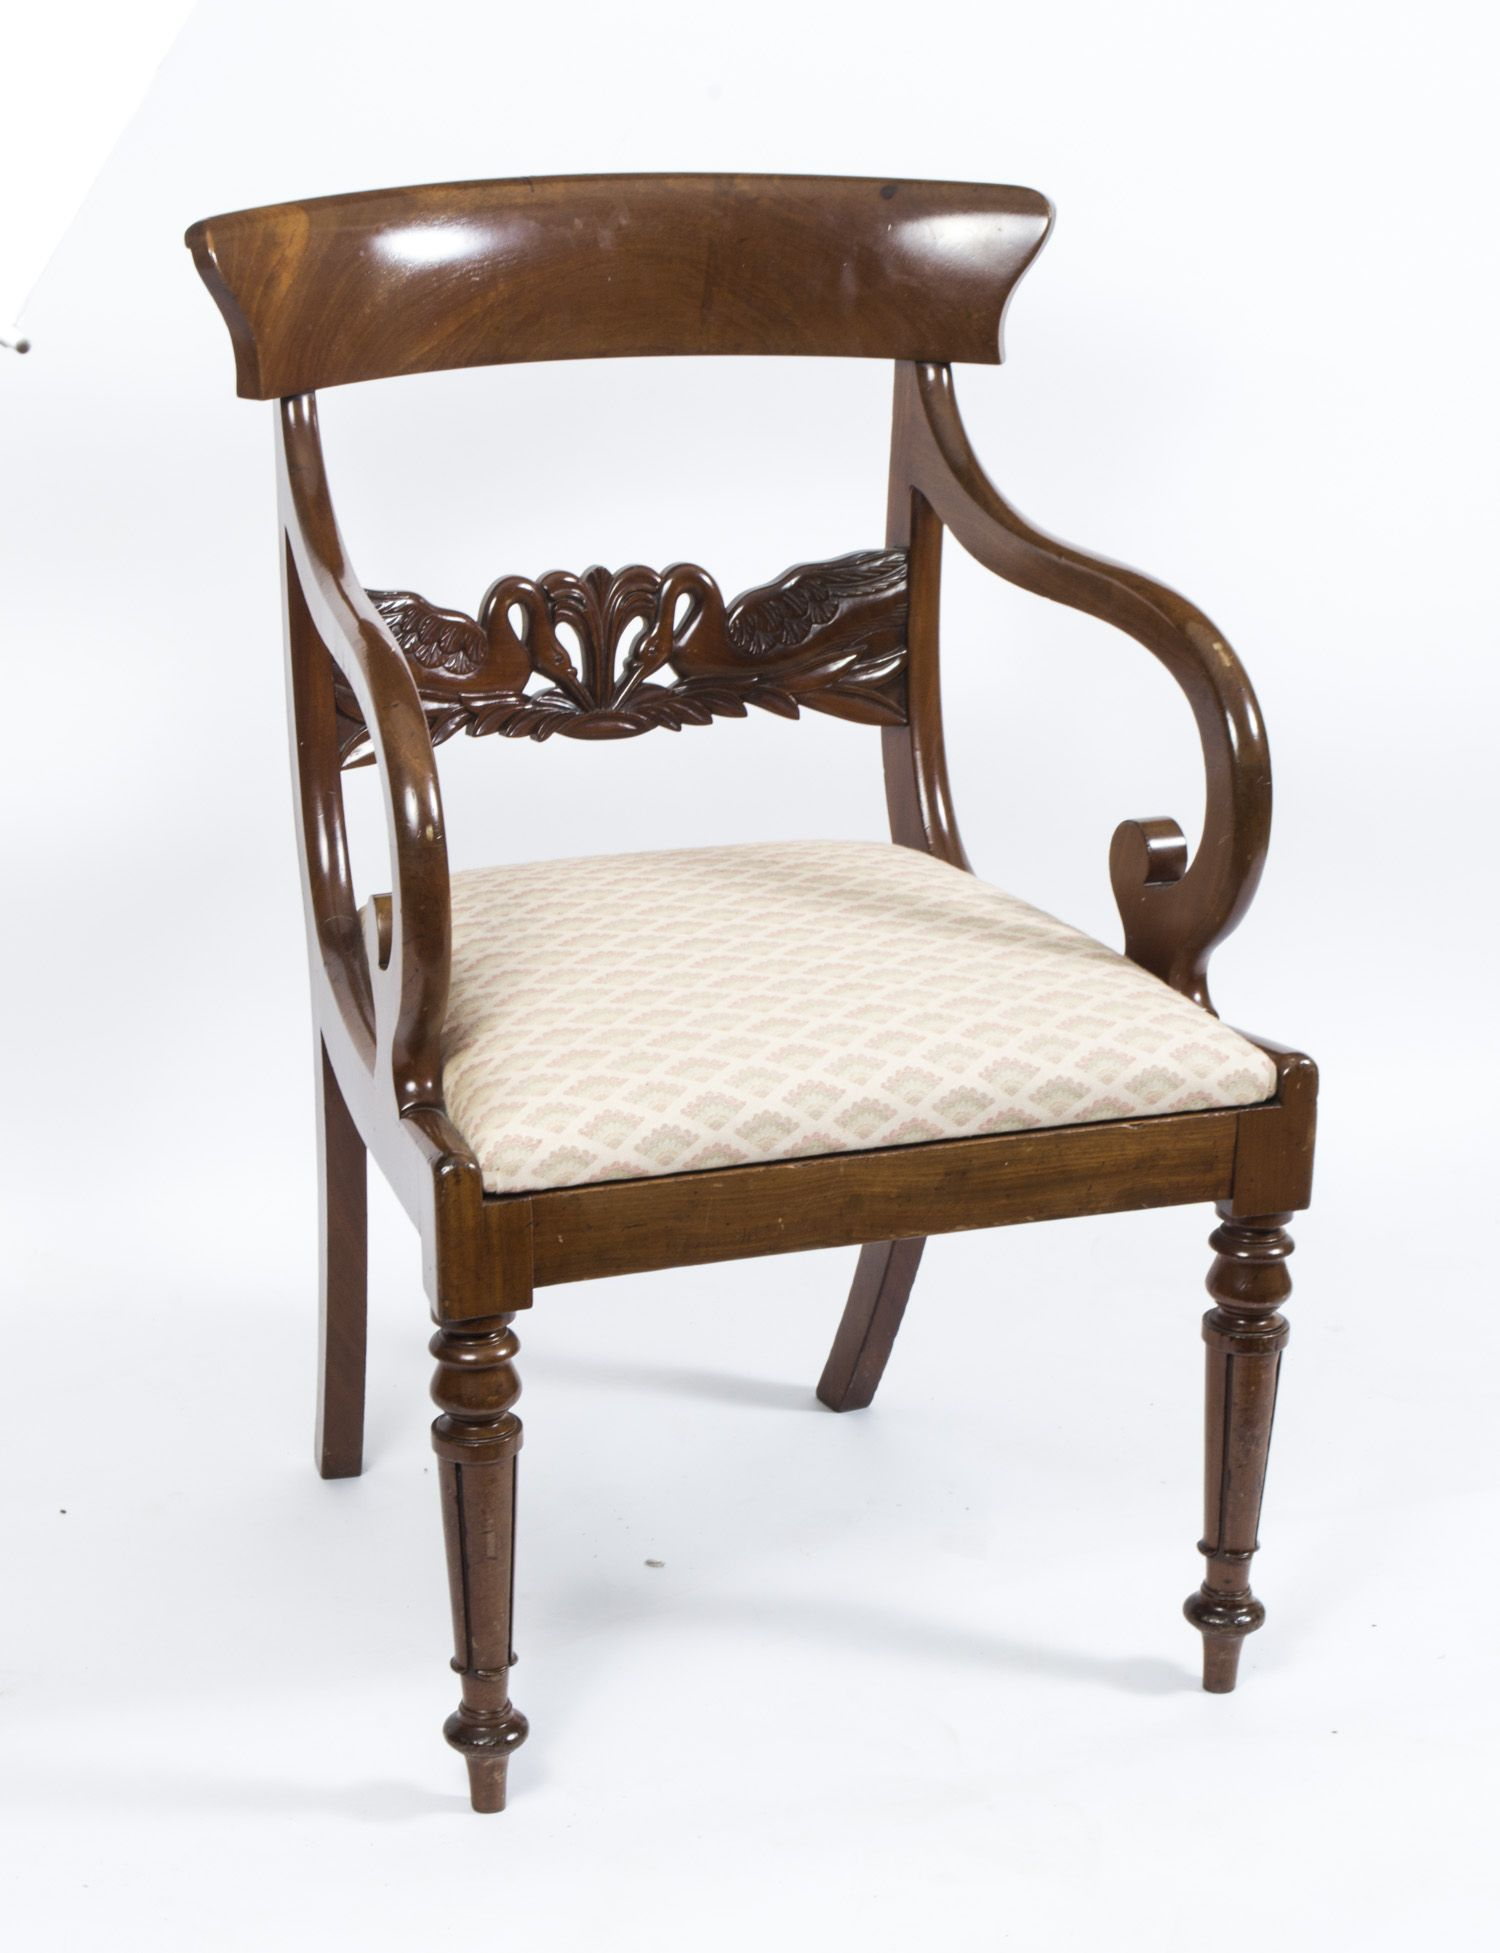 An Antique English Regency Swan Carved Armchair Circa 1820 Desk